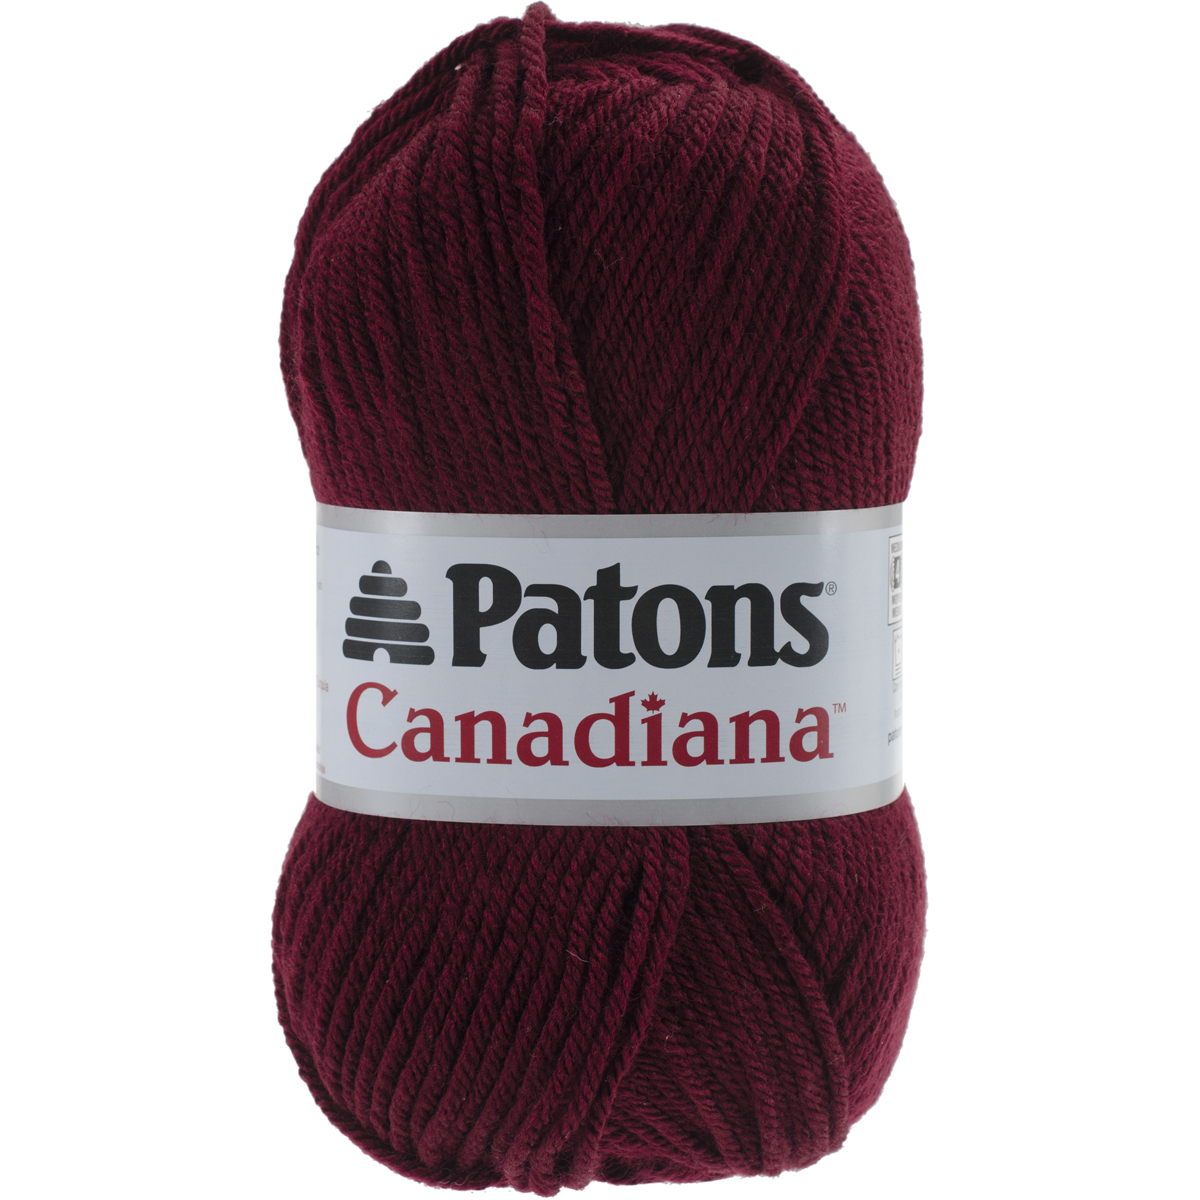 Patons Canadiana Yarn - Solids - 18 COLORS